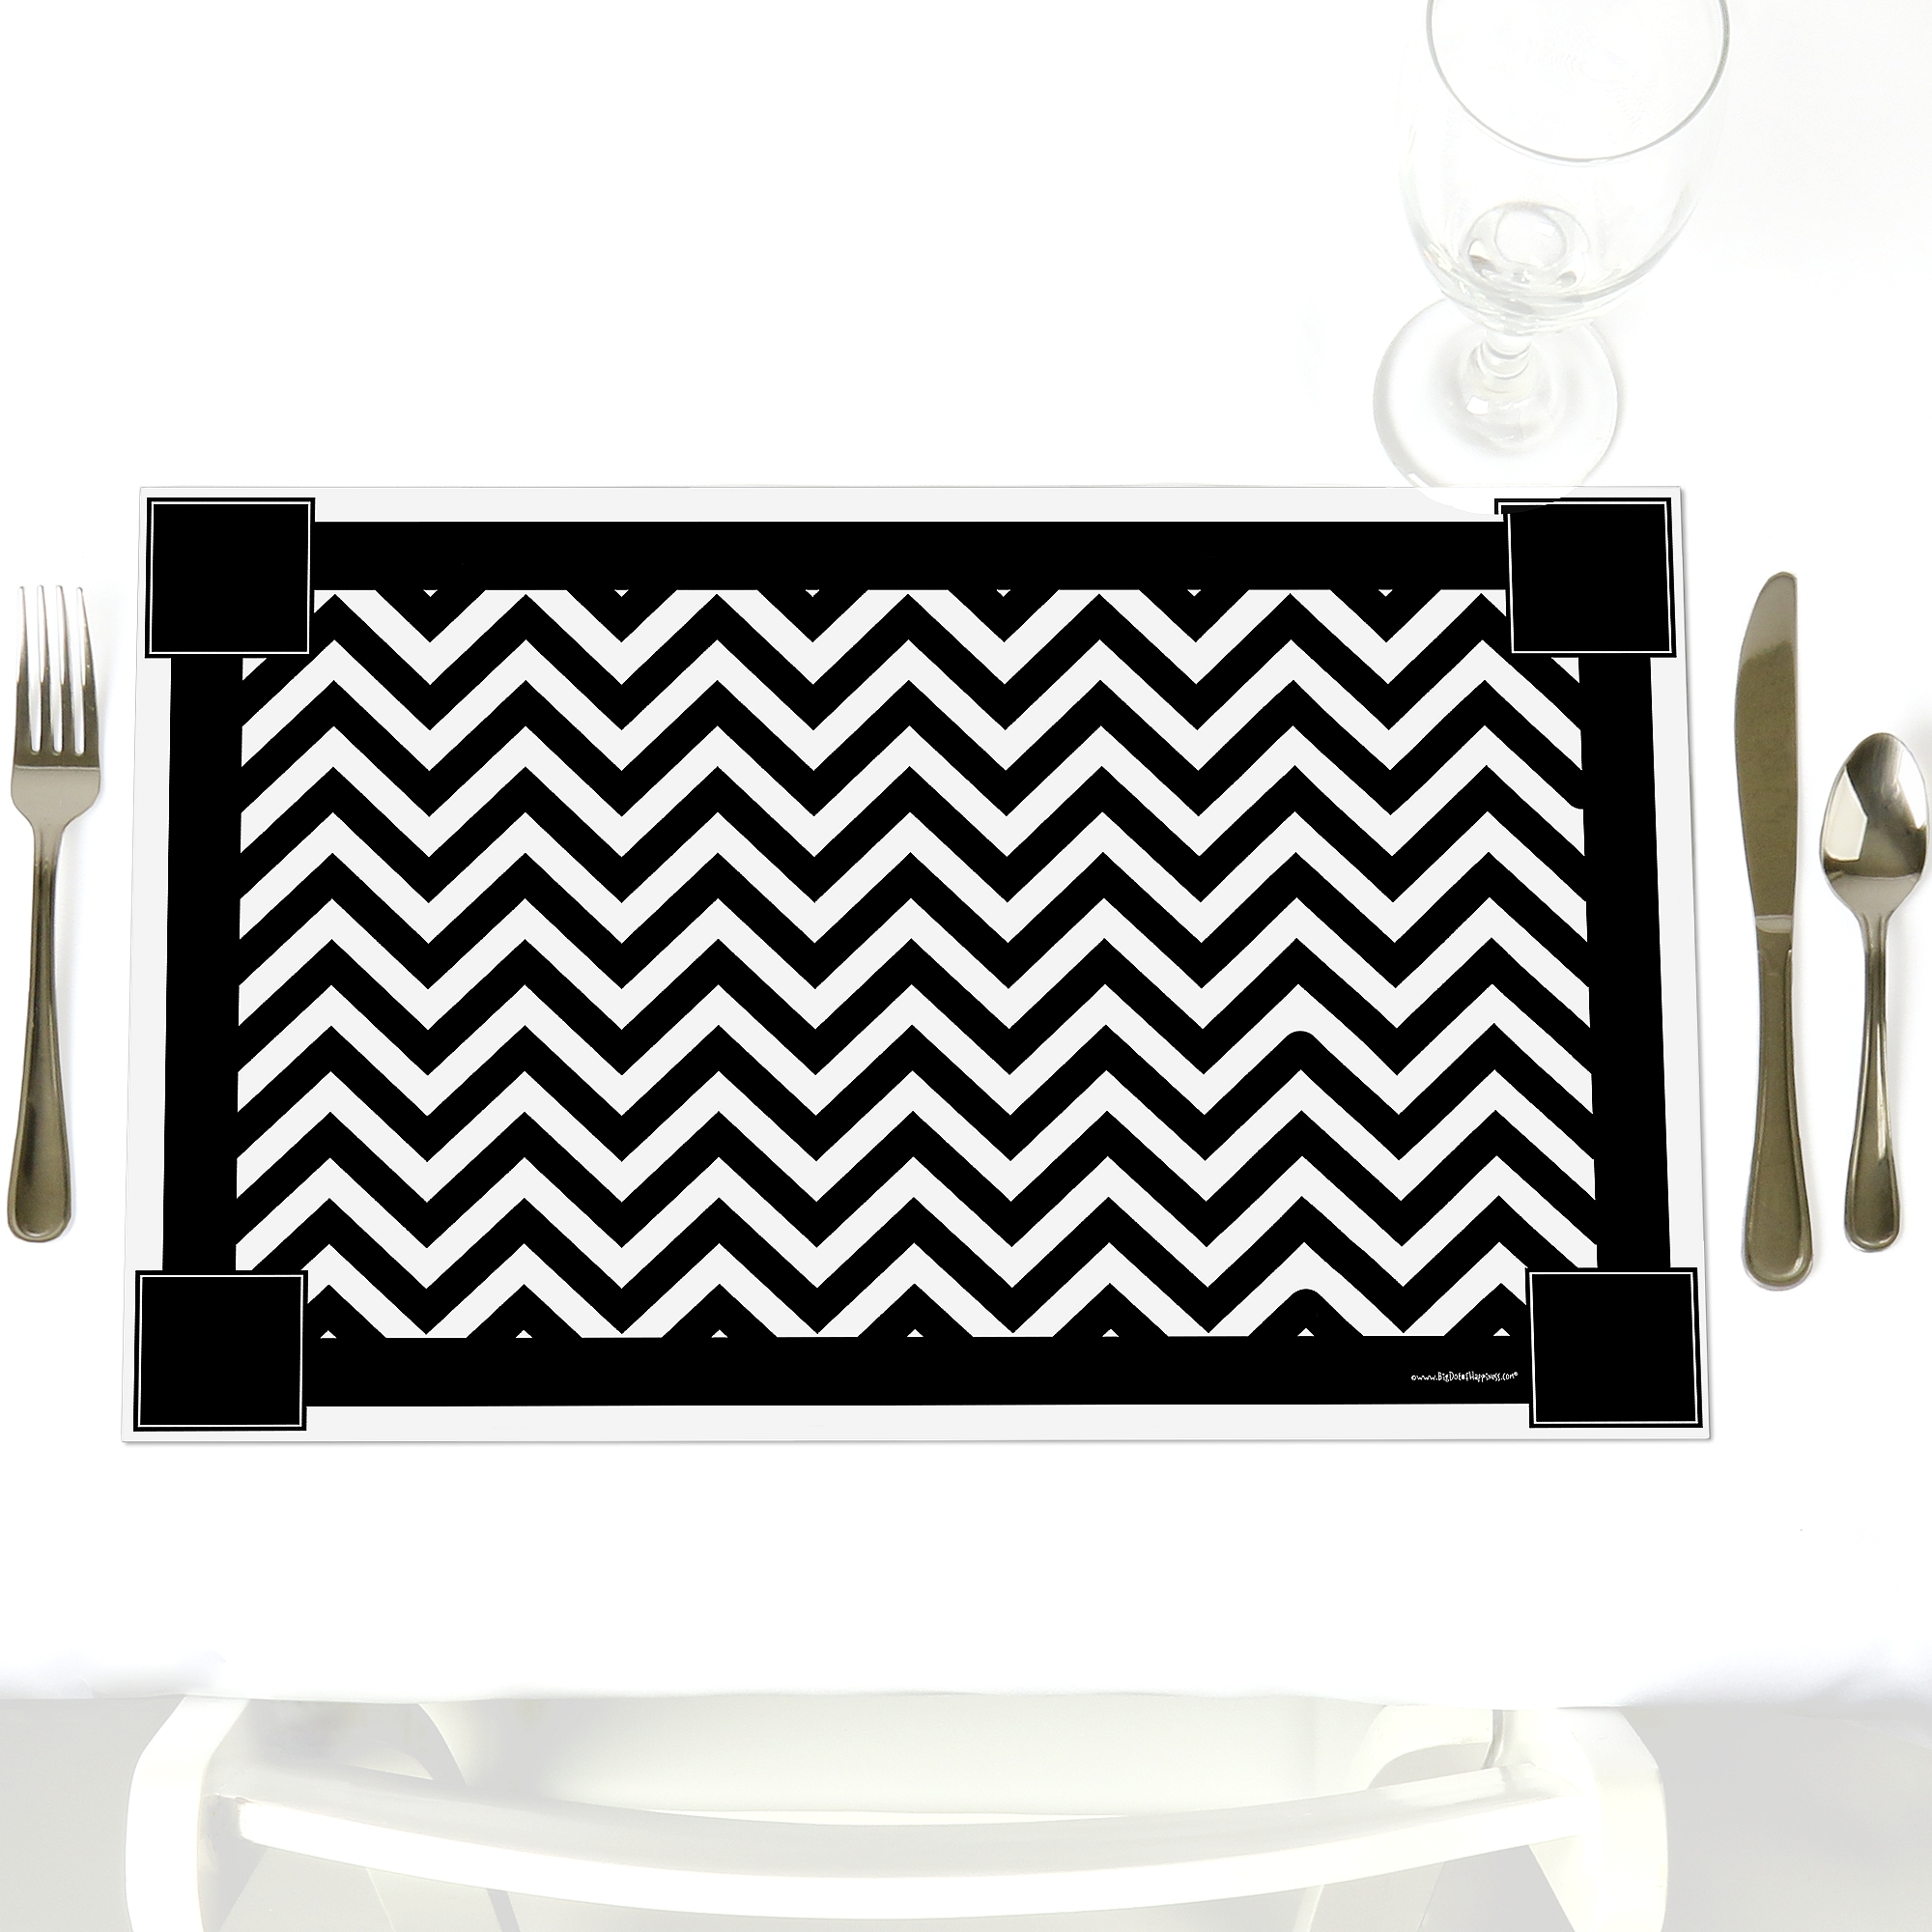 Chevron Black and White - Party Table Decorations - Baby Shower or Birthday Party Placemats - Set of 12